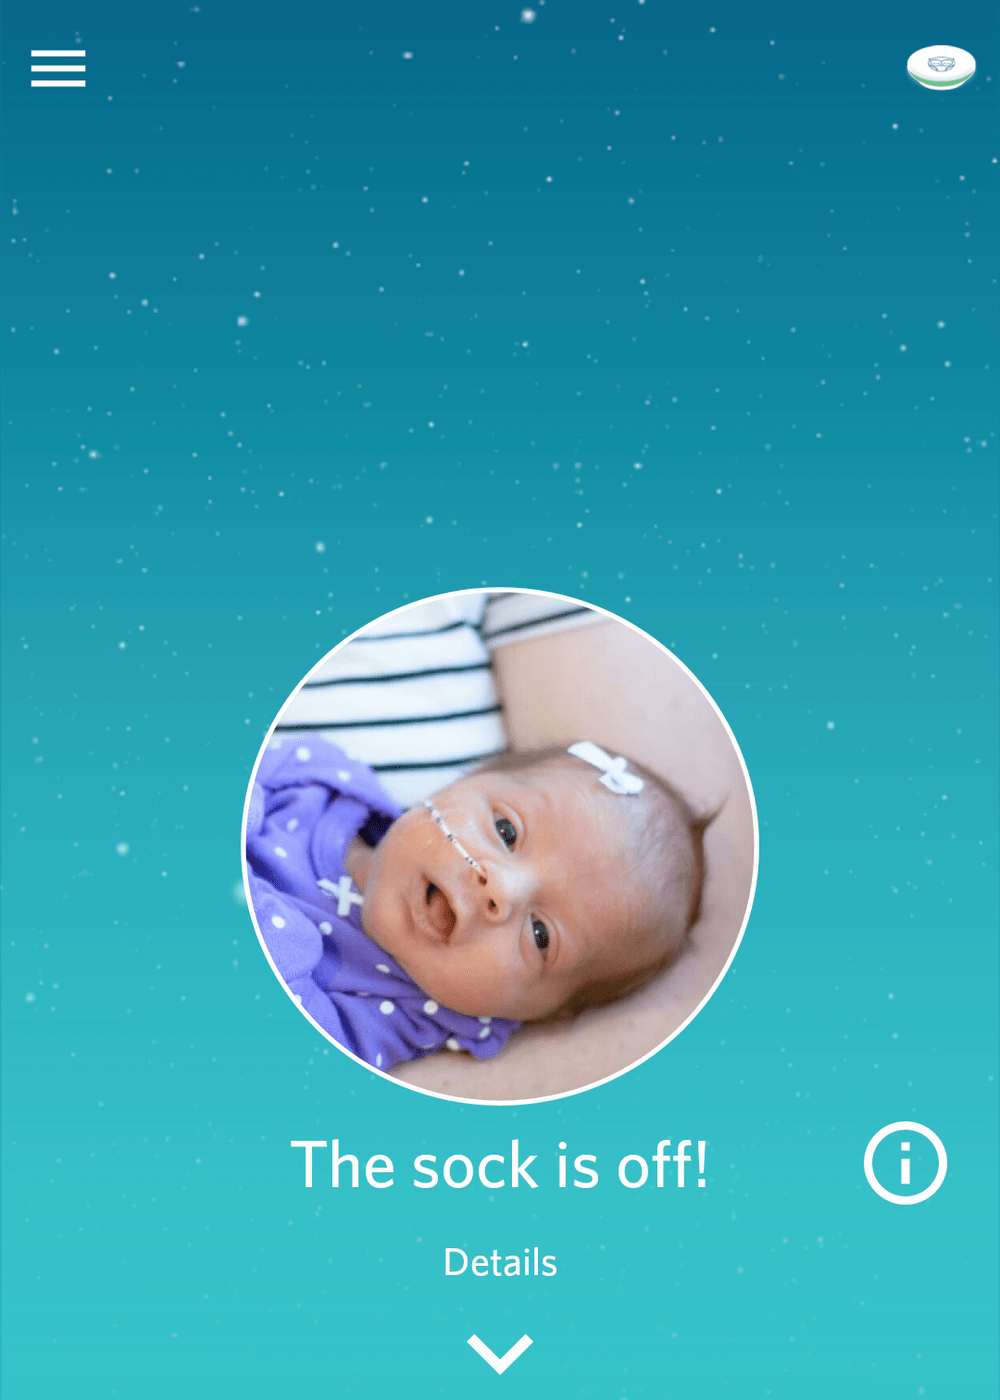 If the sock falls off or it's having trouble getting a reading, the monitor is designed to notify you with a song. It's an extra set of eyes, to help you be notified when your baby needs you most.